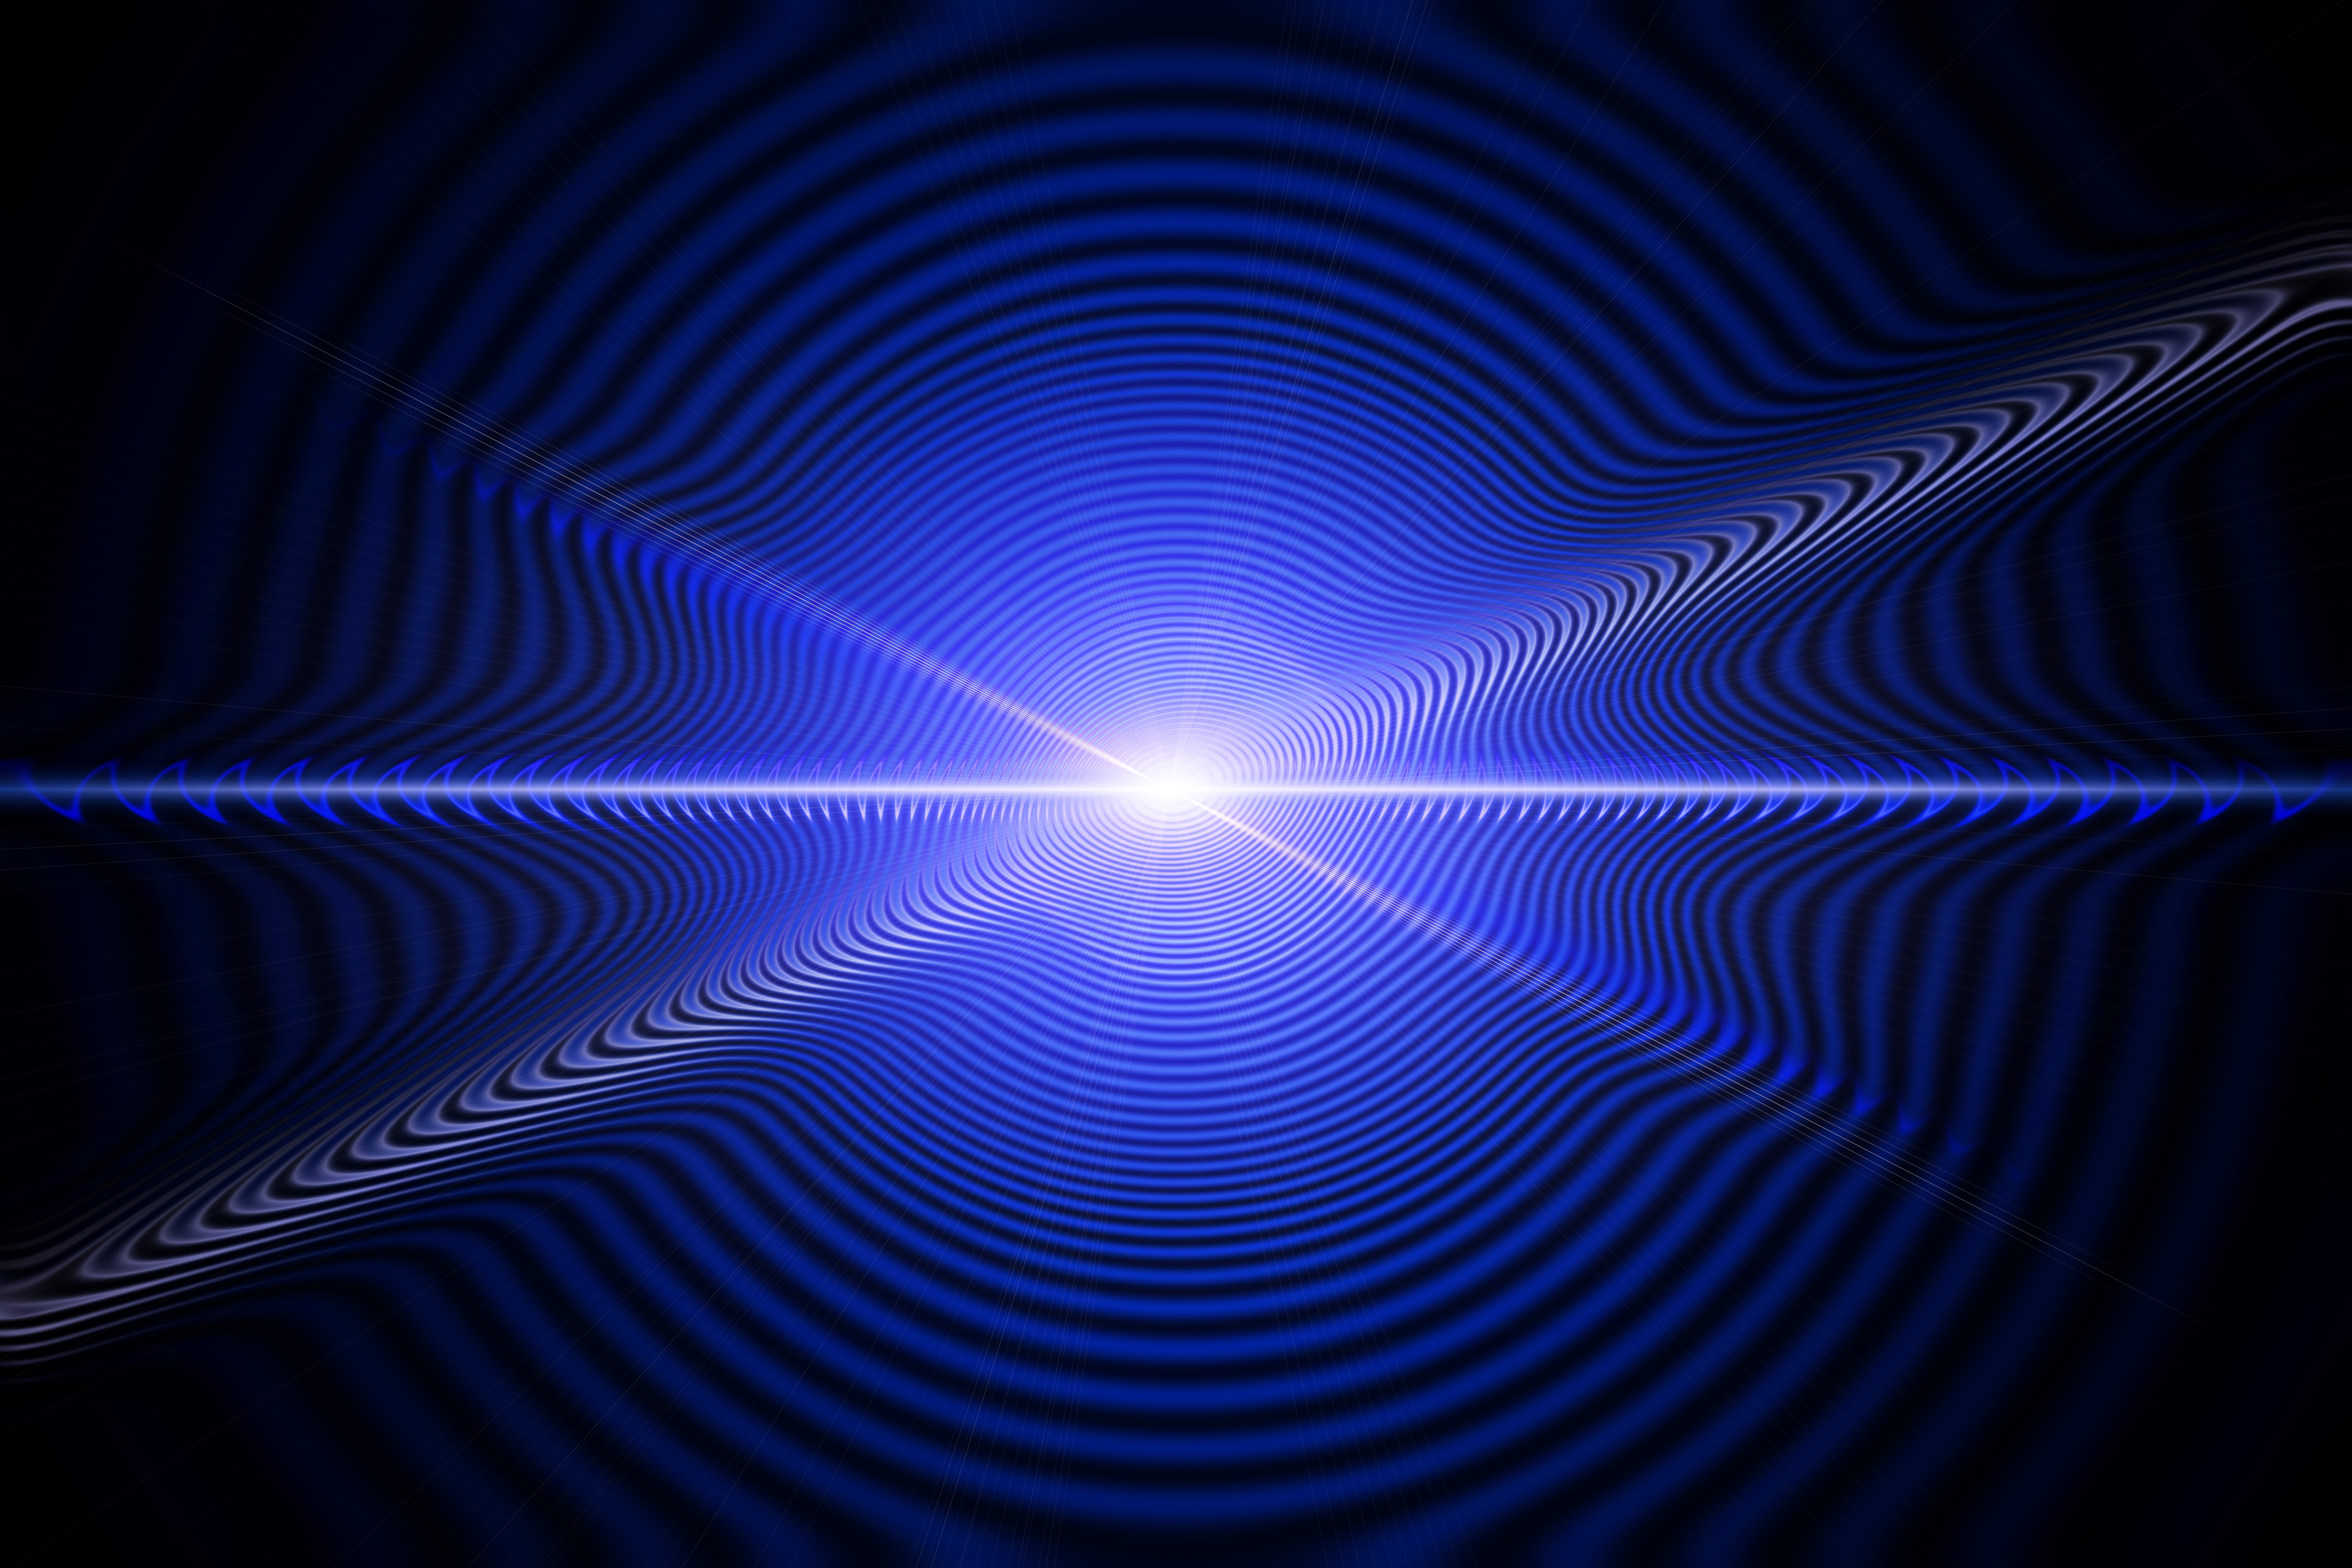 74947 download wallpaper Abstract, Lines, Wavy, Beams, Rays, Glow, Shine, Brilliance screensavers and pictures for free